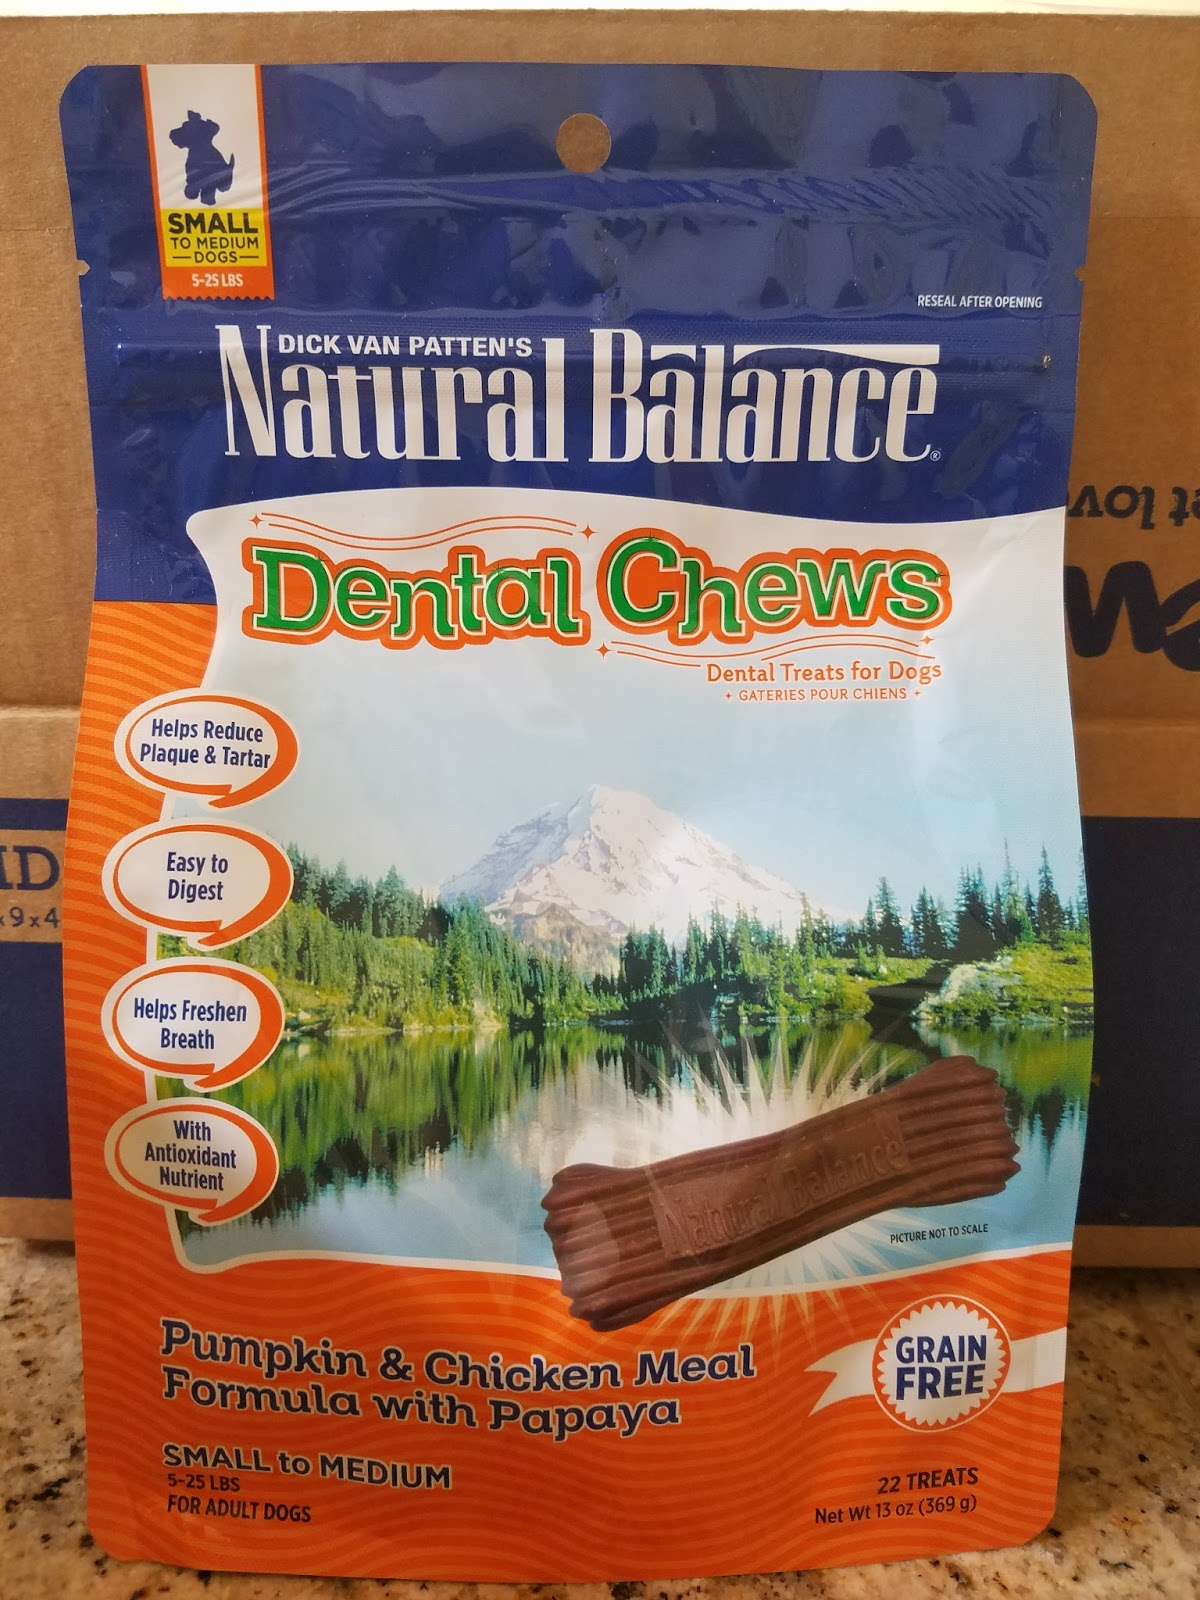 Natural Balance Dog Food Yahoo Answer